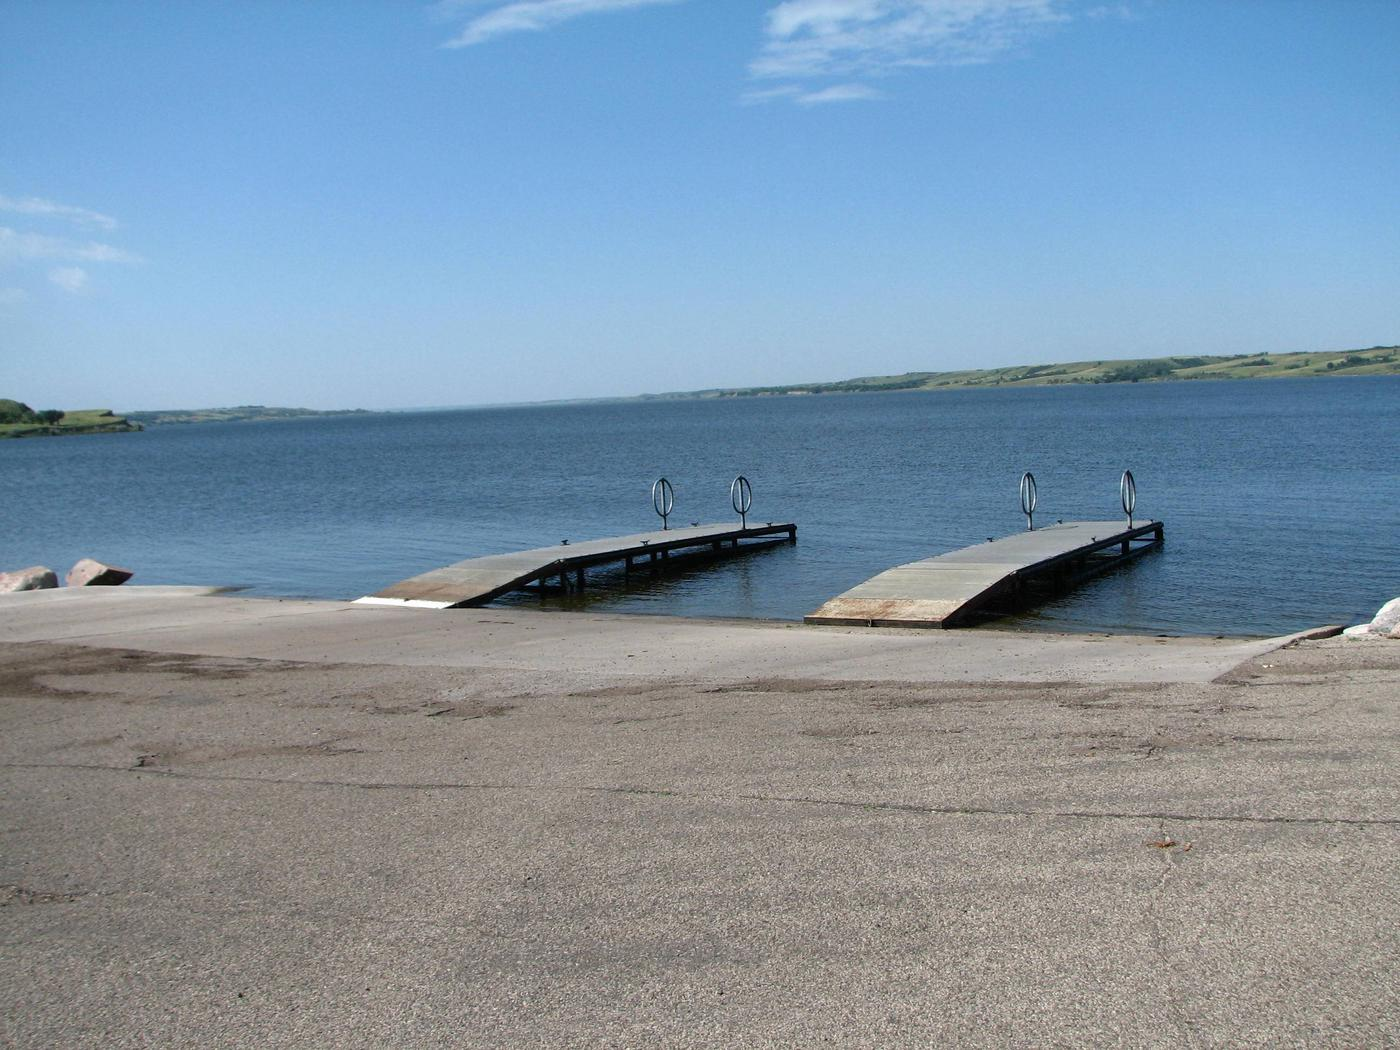 Beaver Creek Recreation Area Boat RampBeaver Creek Recreation Area has a 3 lane boat ramp with 2 docks in the campground for quick easy access on and off of Lake Oahe.